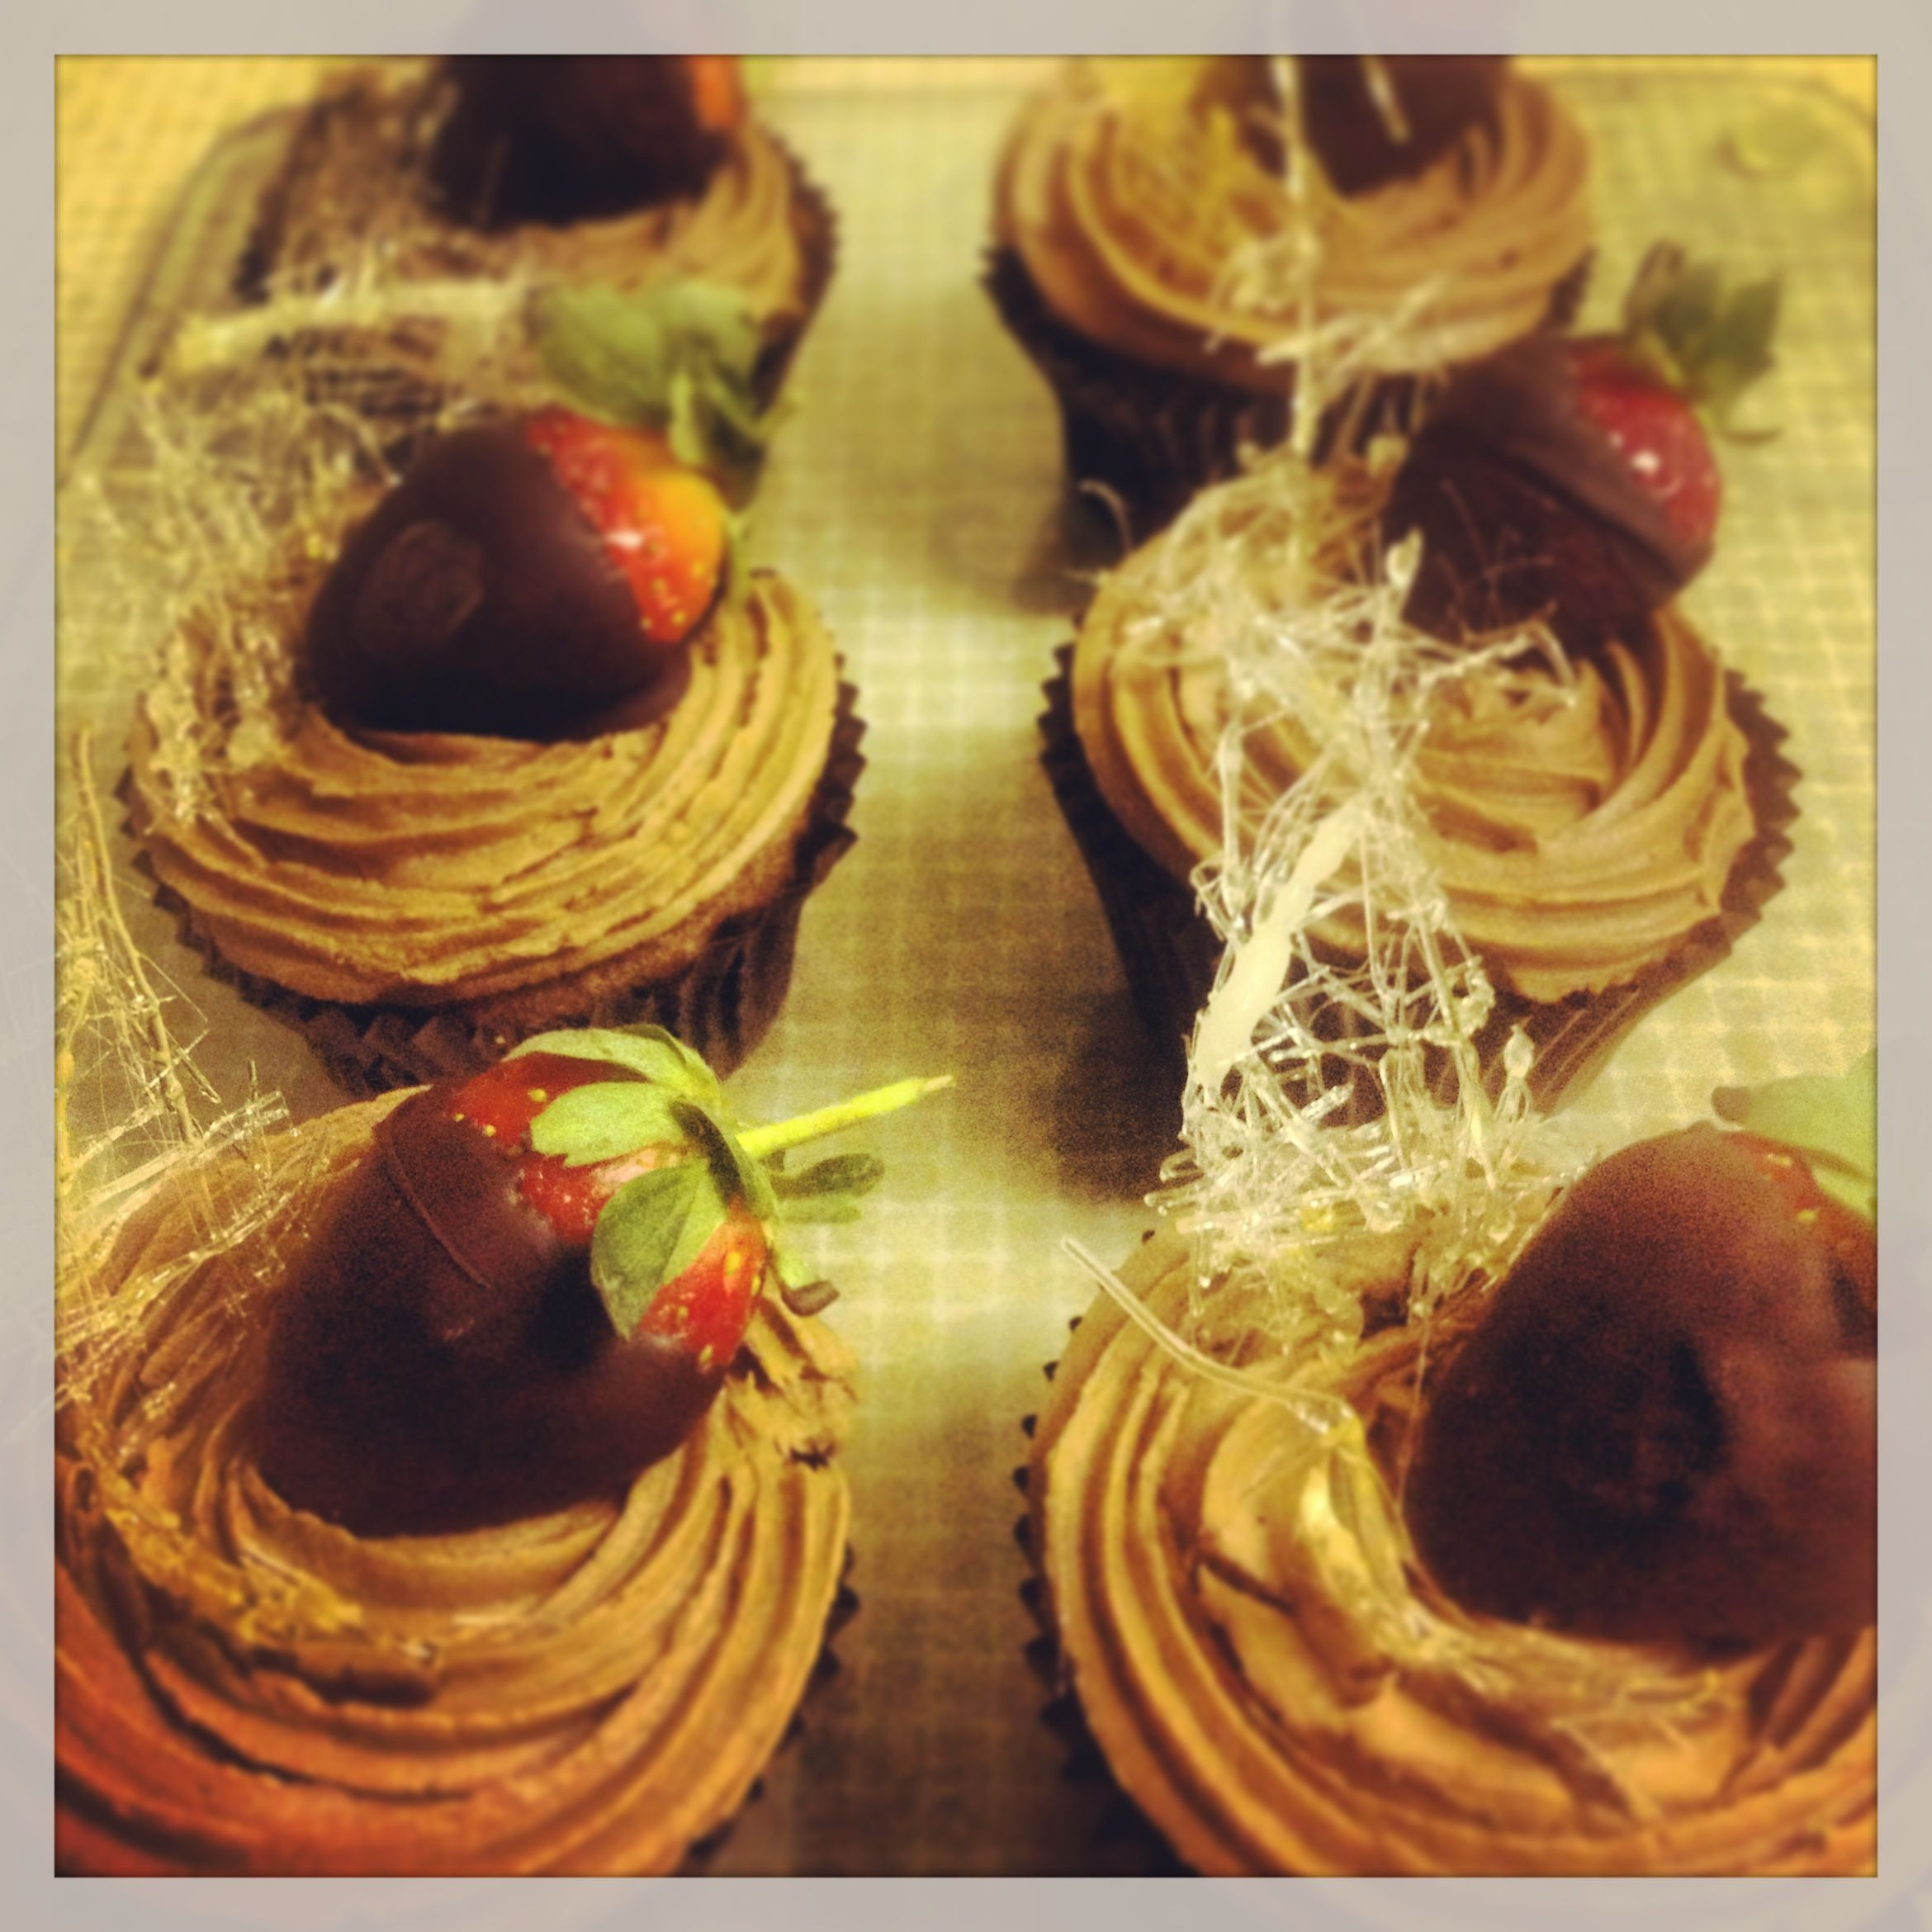 I made these chocolate cupcakes with spun sugar to